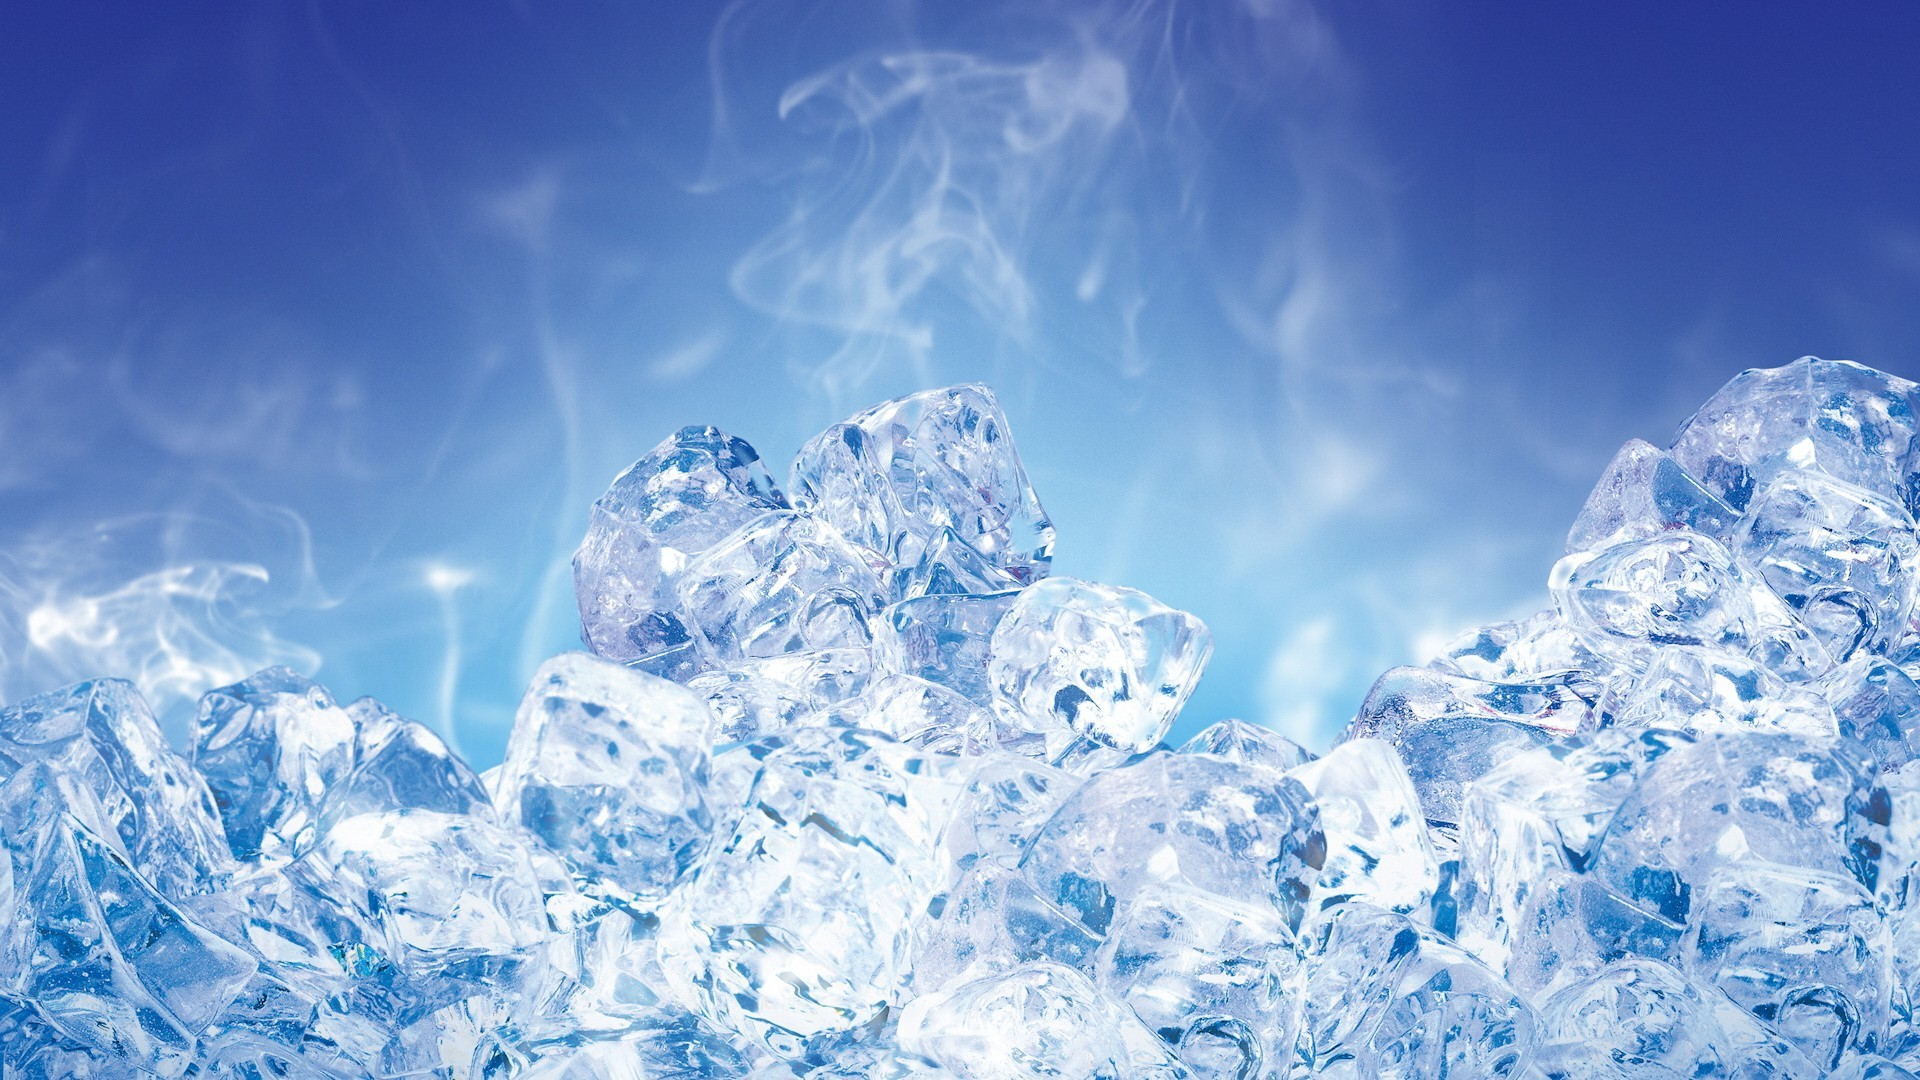 1920x1080 File Name 832691 Ice Background HD Wallpapers Backgrounds